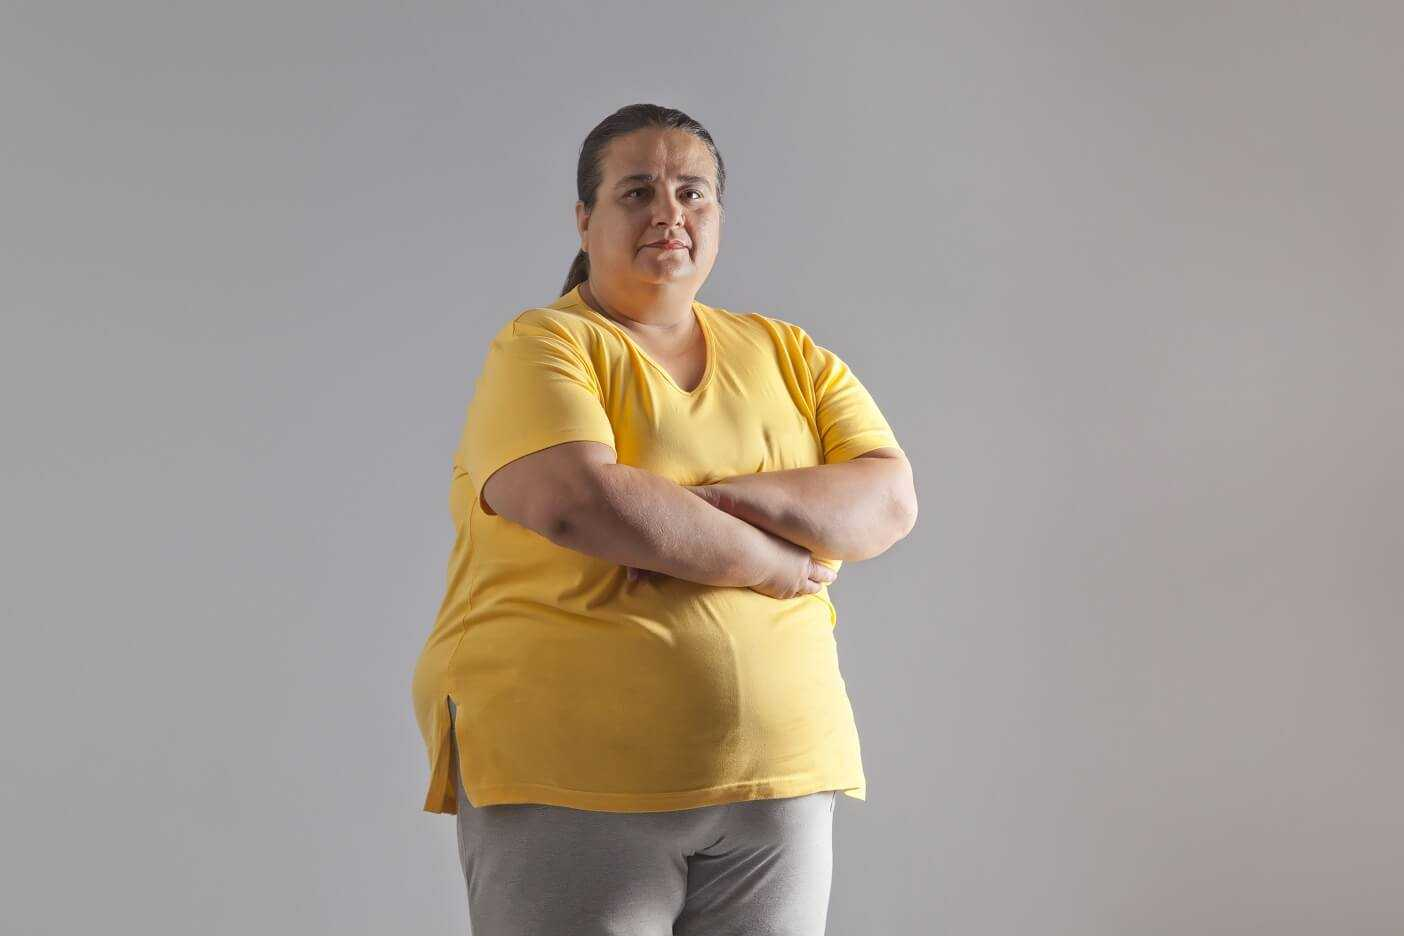 Obese? Have higher risk of turning smoker!